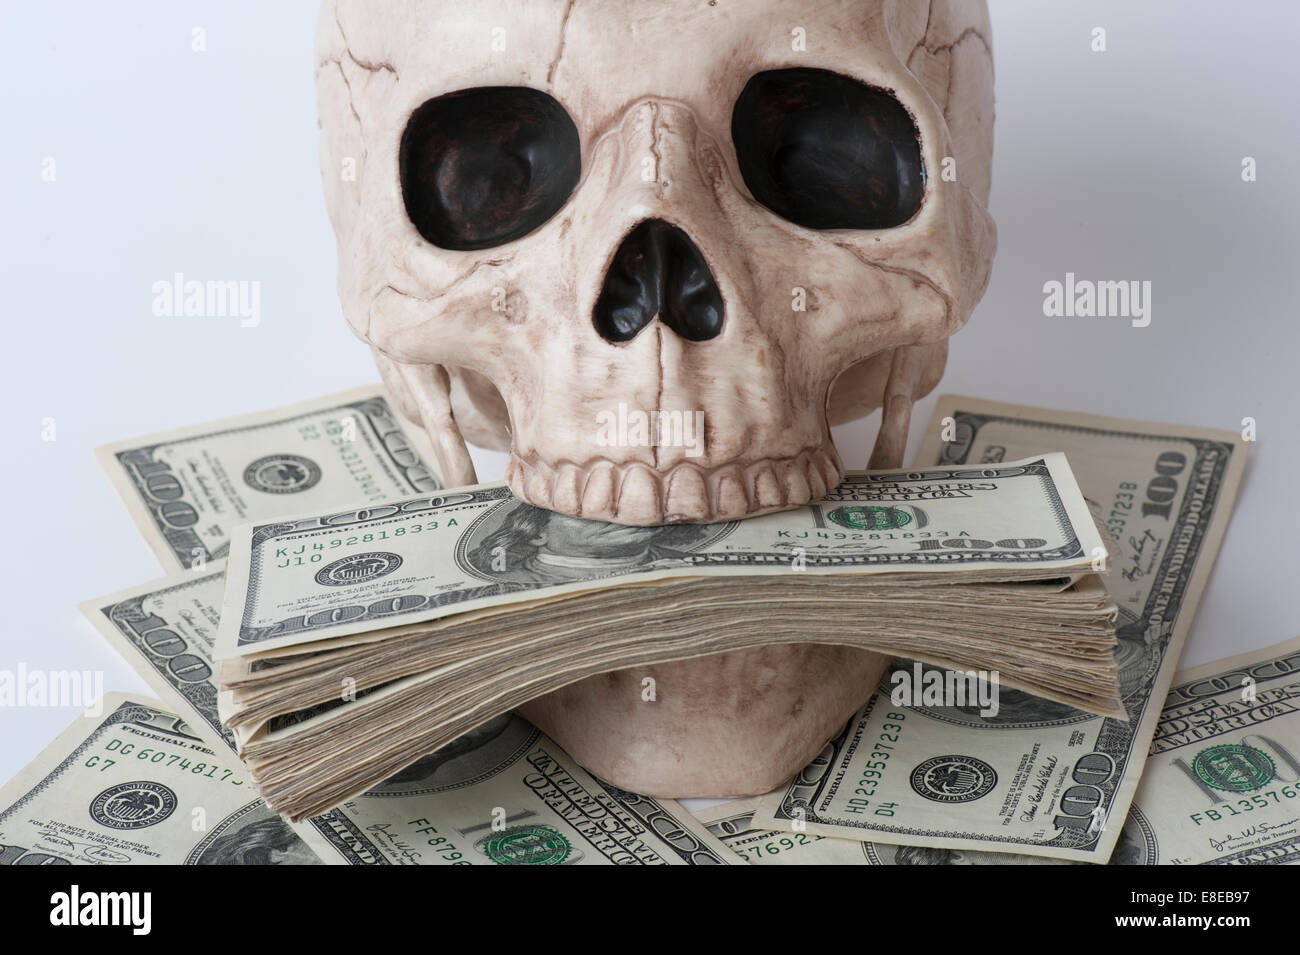 Human skull surrounded by stacks of one hundred dollar bills concept greed - Stock Image